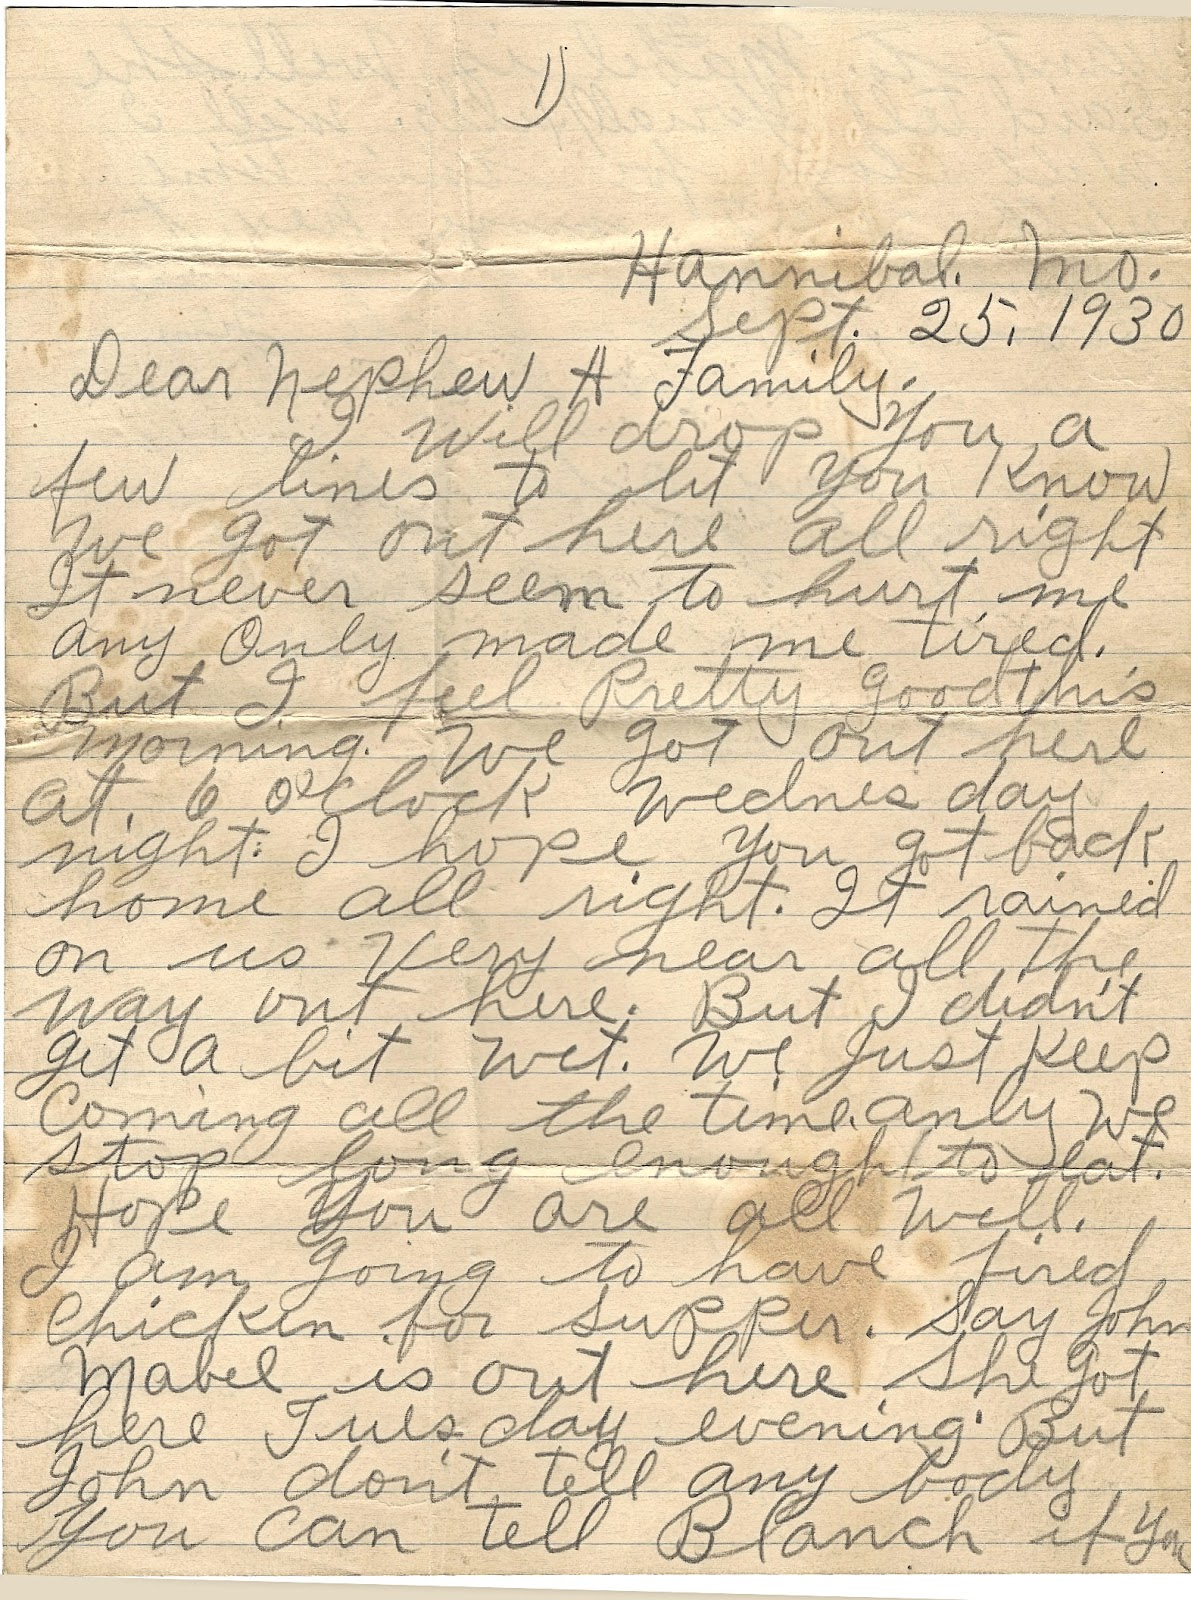 Letter from Uncle Jim 25SEP1930.jpg